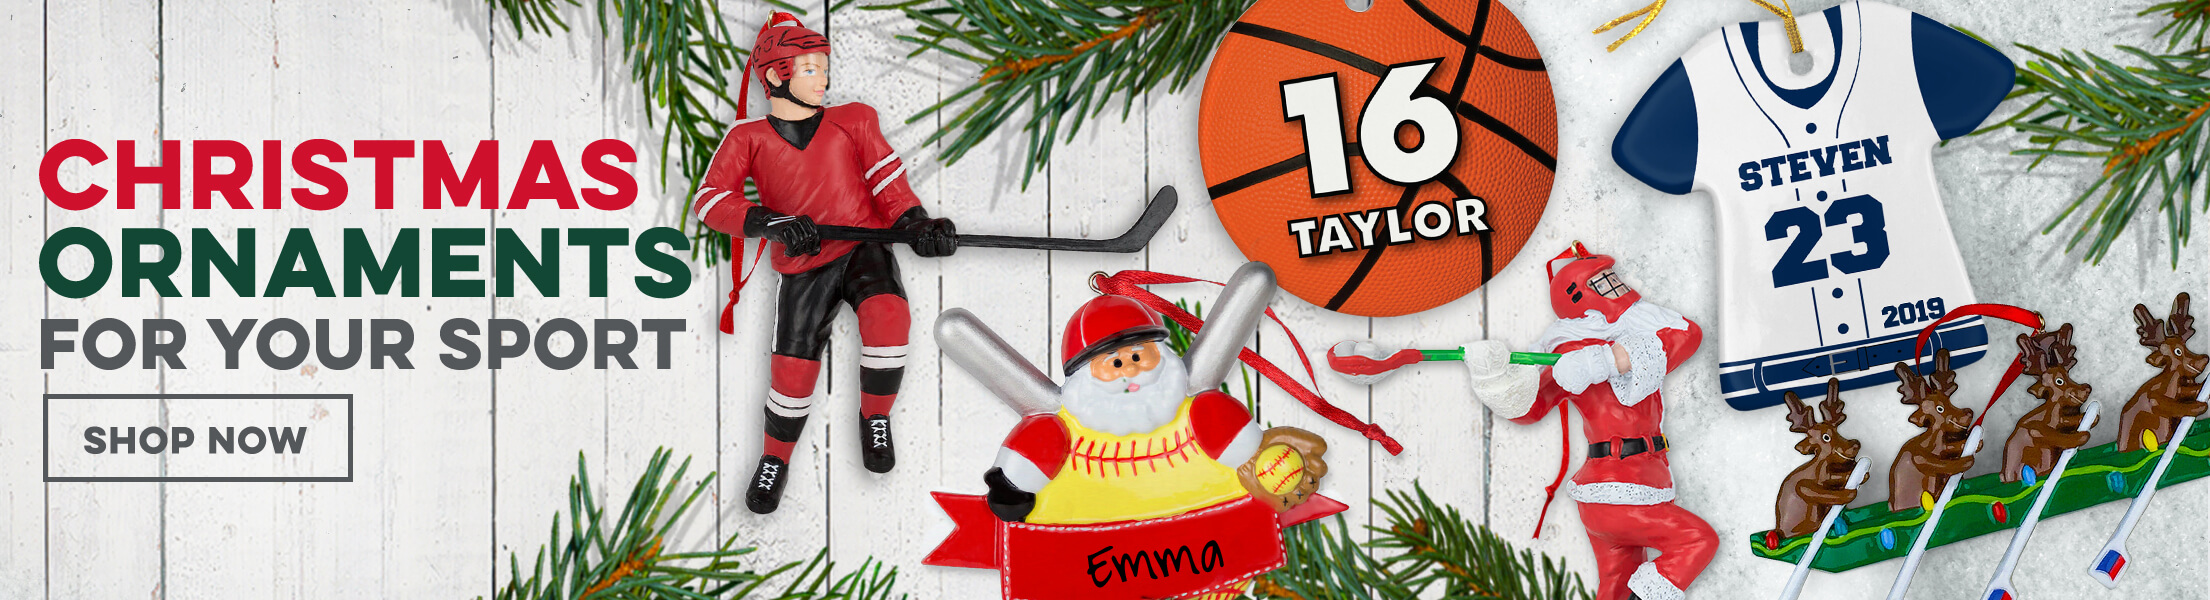 Christmas Ornaments For Your Sport